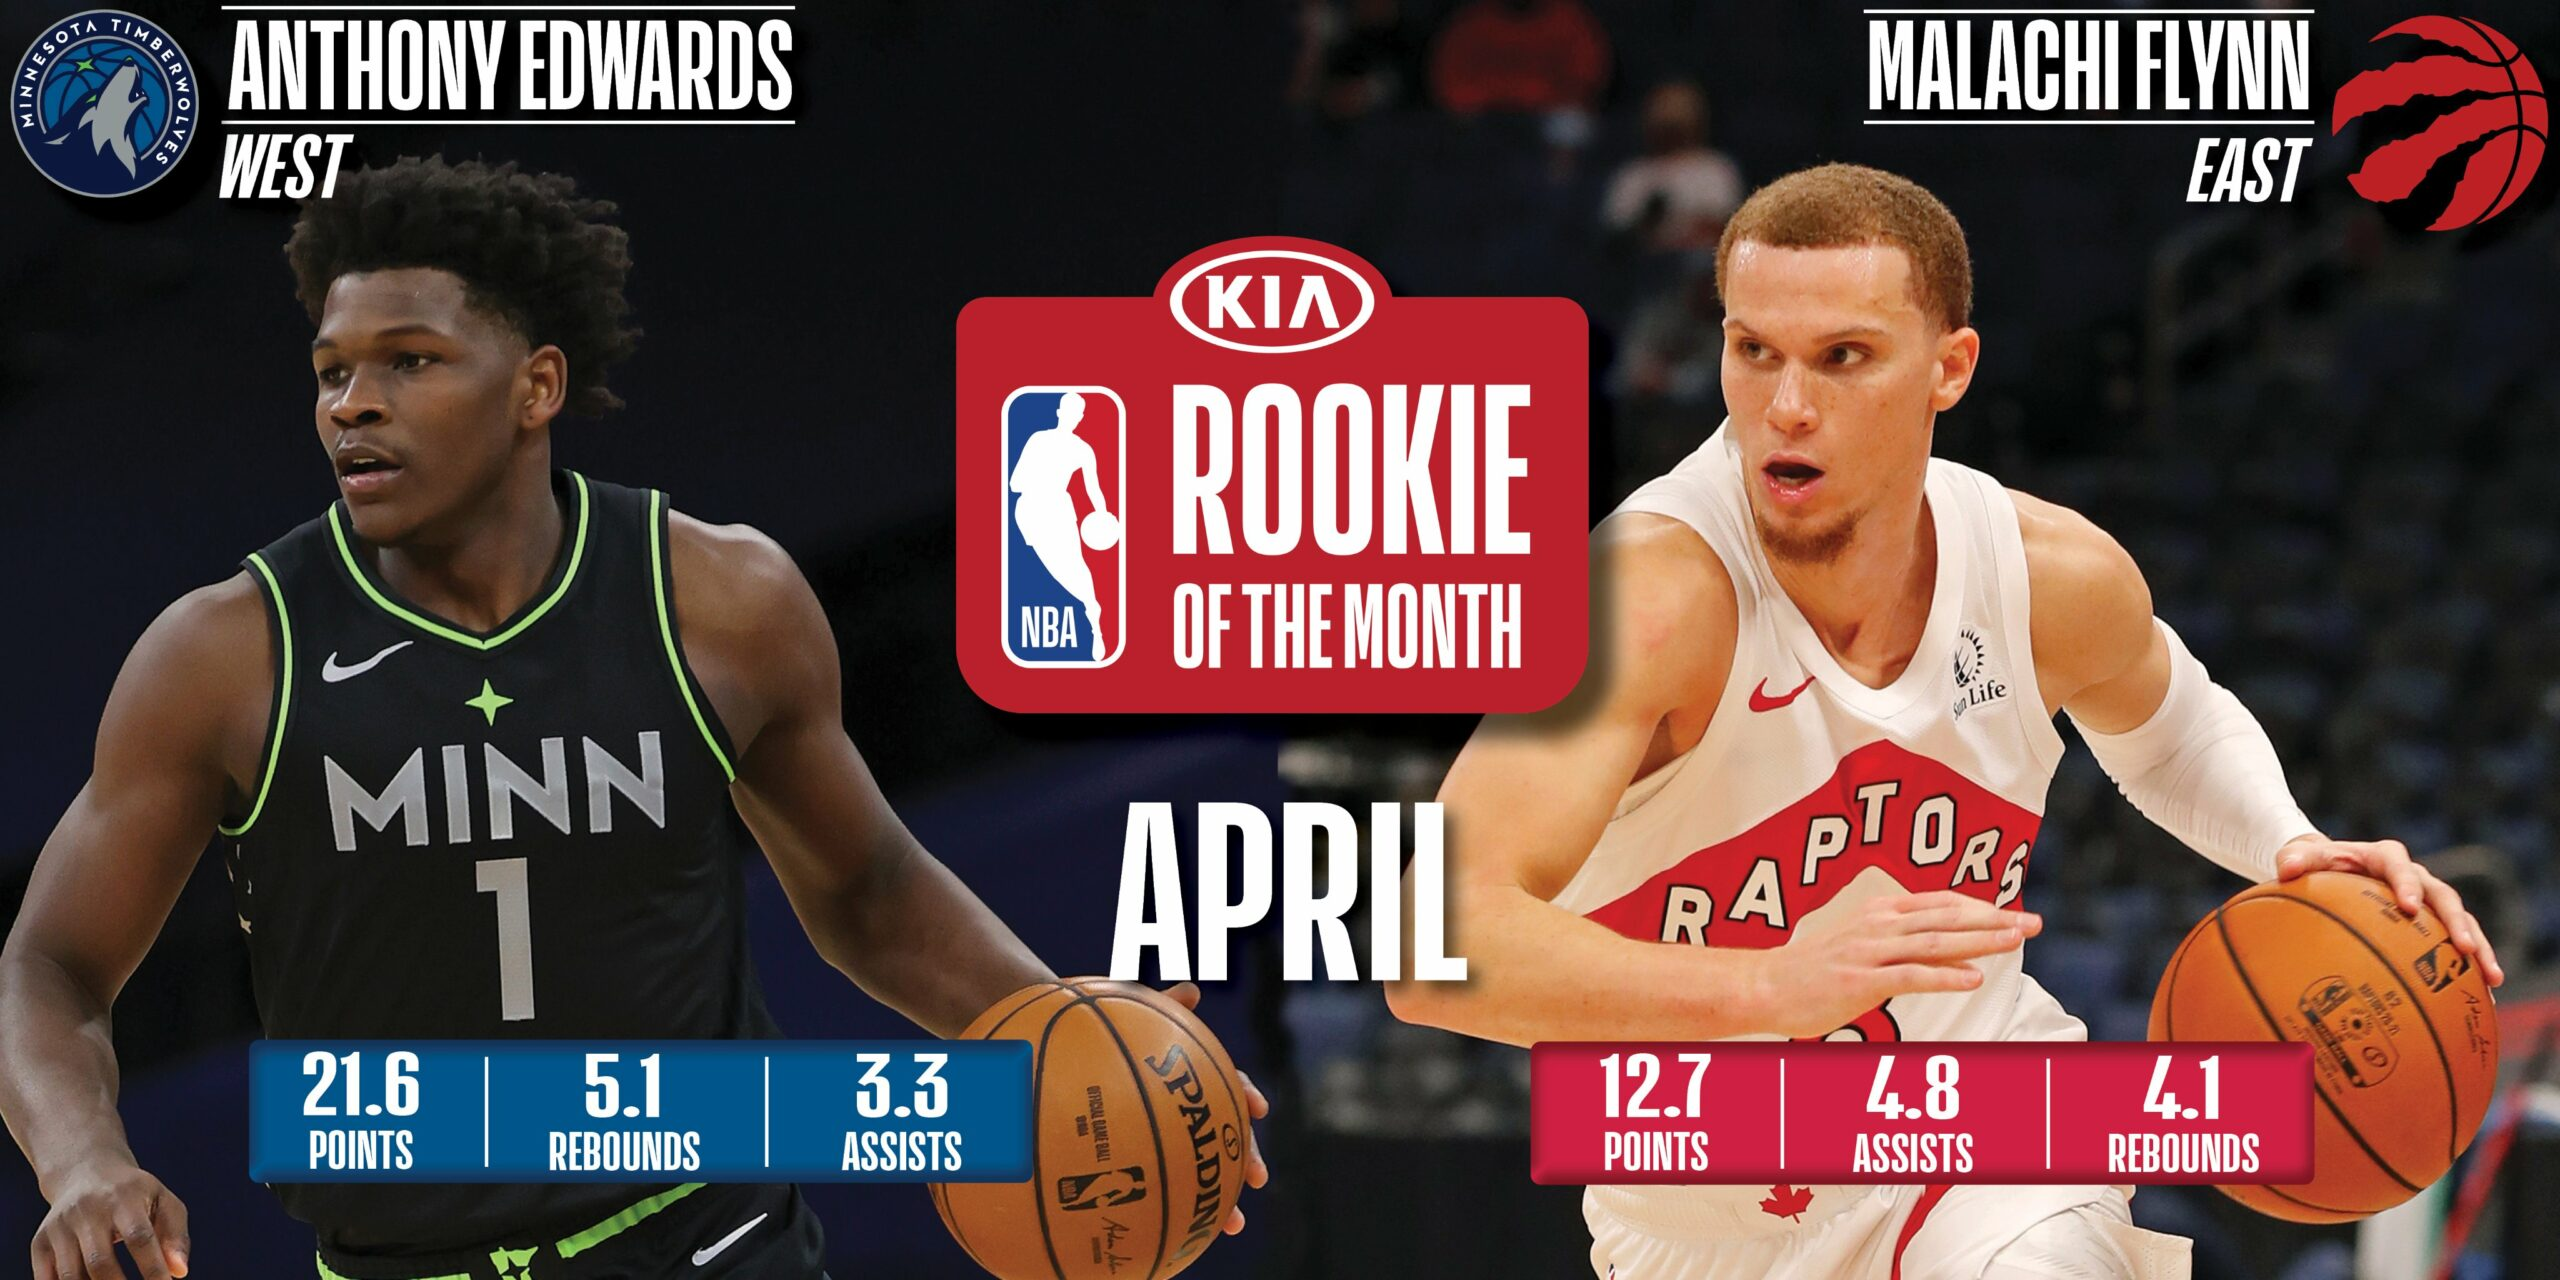 Anthony Edwards, Malachi Flynn named Kia NBA Rookies of the Month